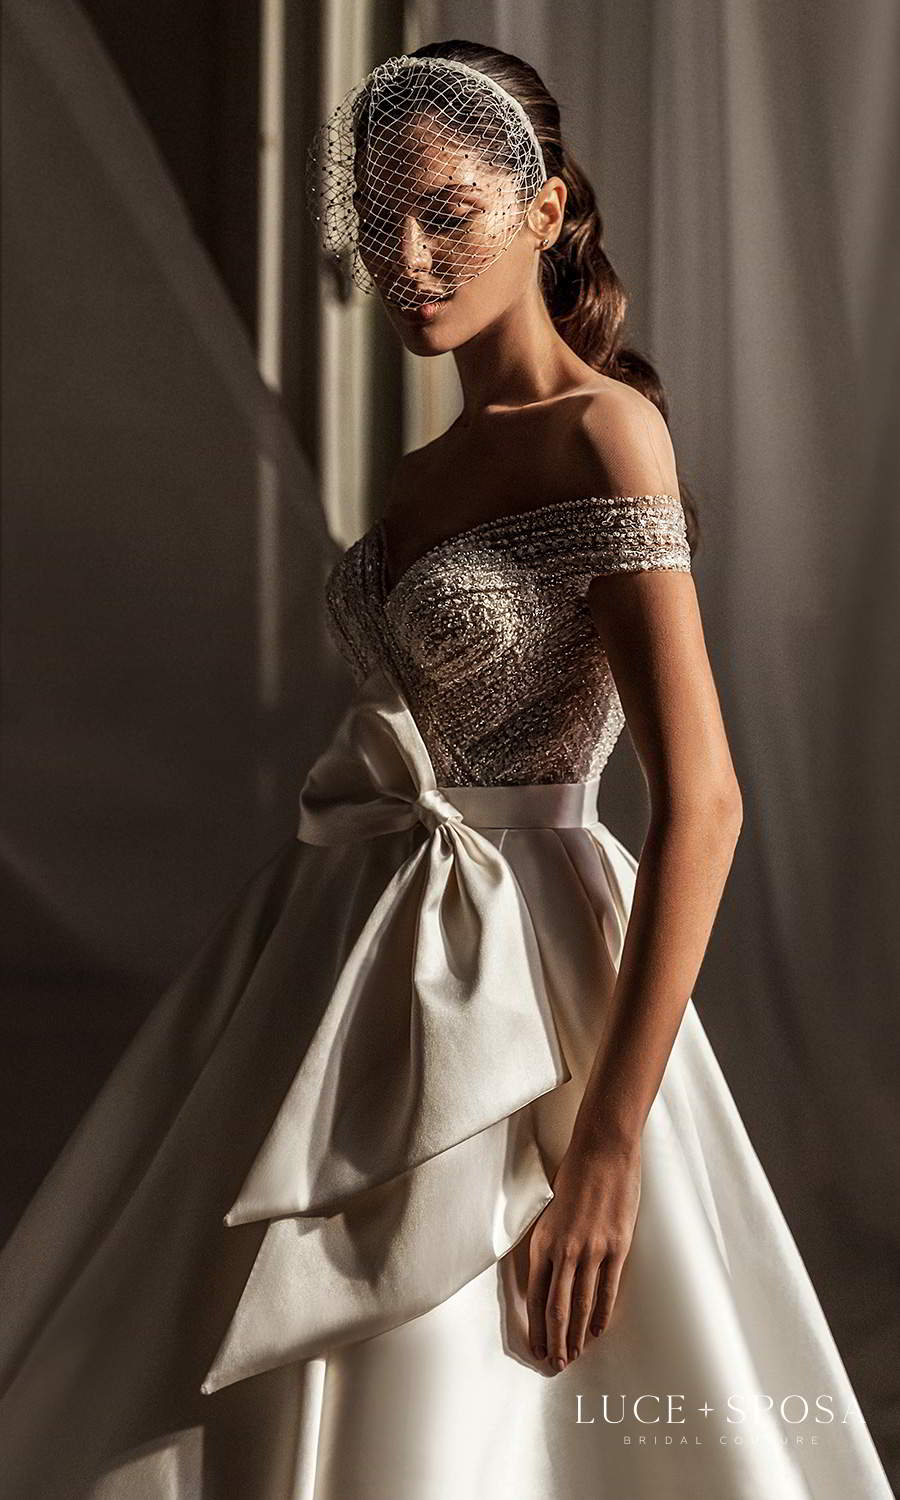 luce sposa 2021 shades of couture bridal off shoulder sleeves sweetheart neckline heavily embellished bodice clean skirt a line ball gown wedding dress chapel train (jade) zv